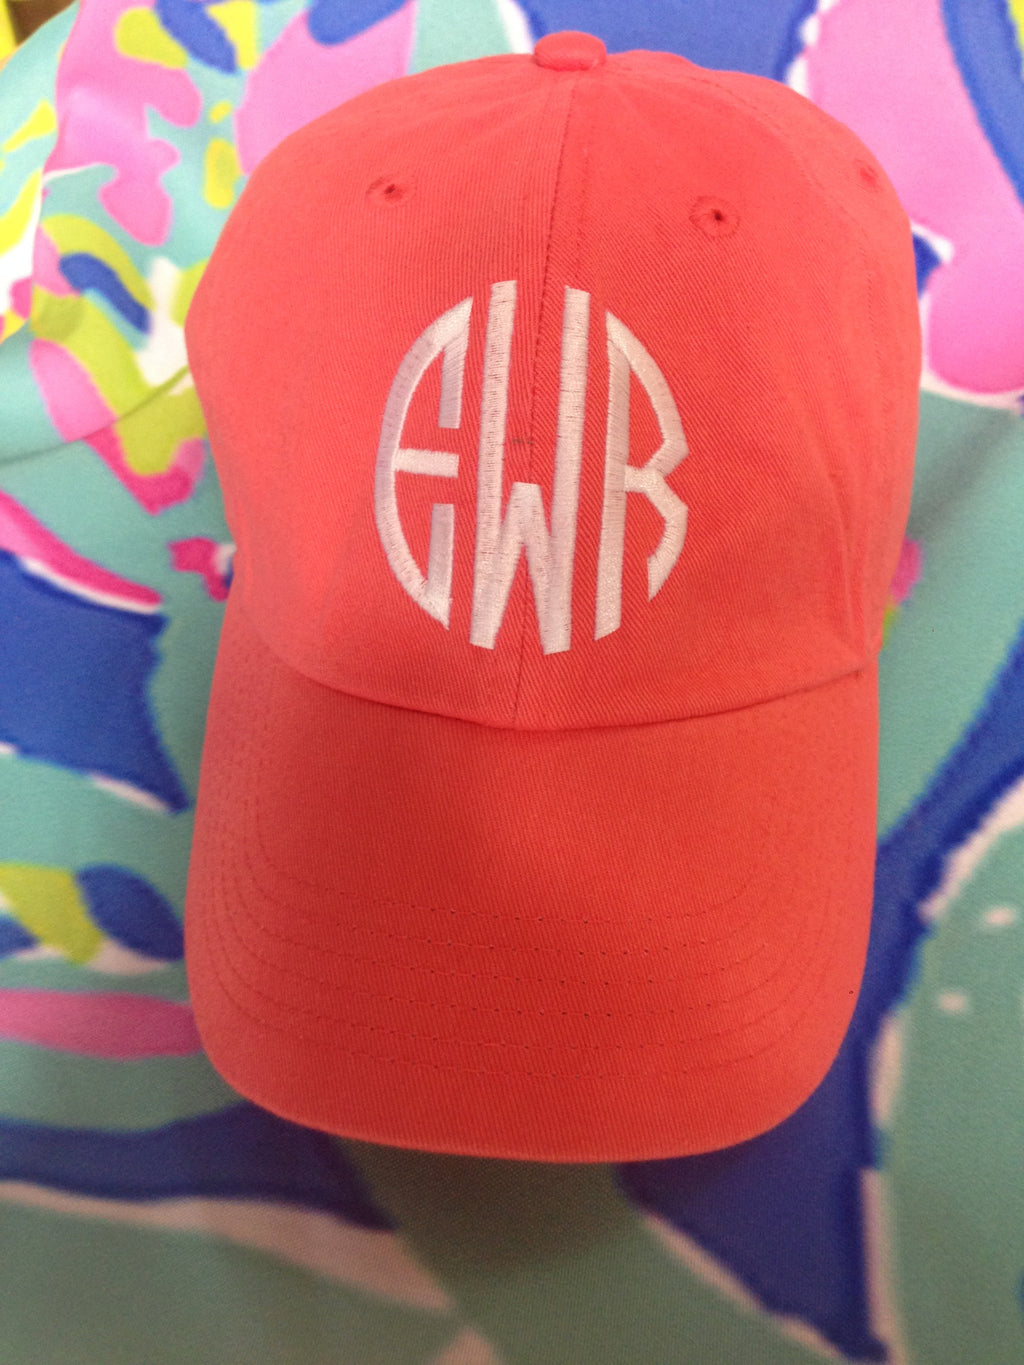 Monogram Baseball Hat: Coral - Circle/ White